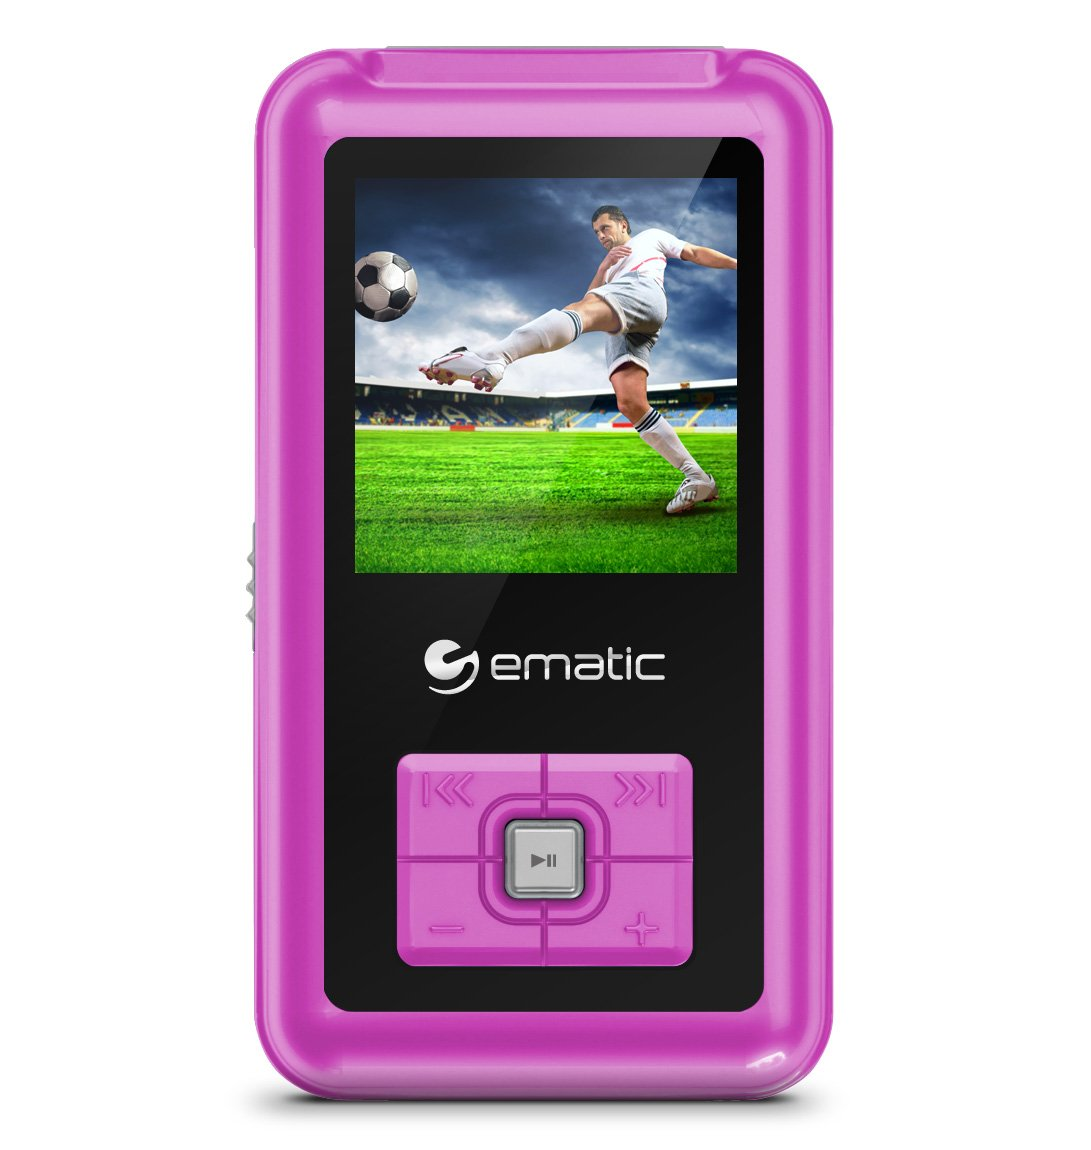 "Ematic Em208vid 8 Gb Pink Flash Portable Media Player - Photo Viewer, Video Player, Audio Player, Fm Tuner, Voice Recorder, E-book, Fm Recorder - 1.5"" Color Lcd - Usb - Headphone (em208vidpn)"